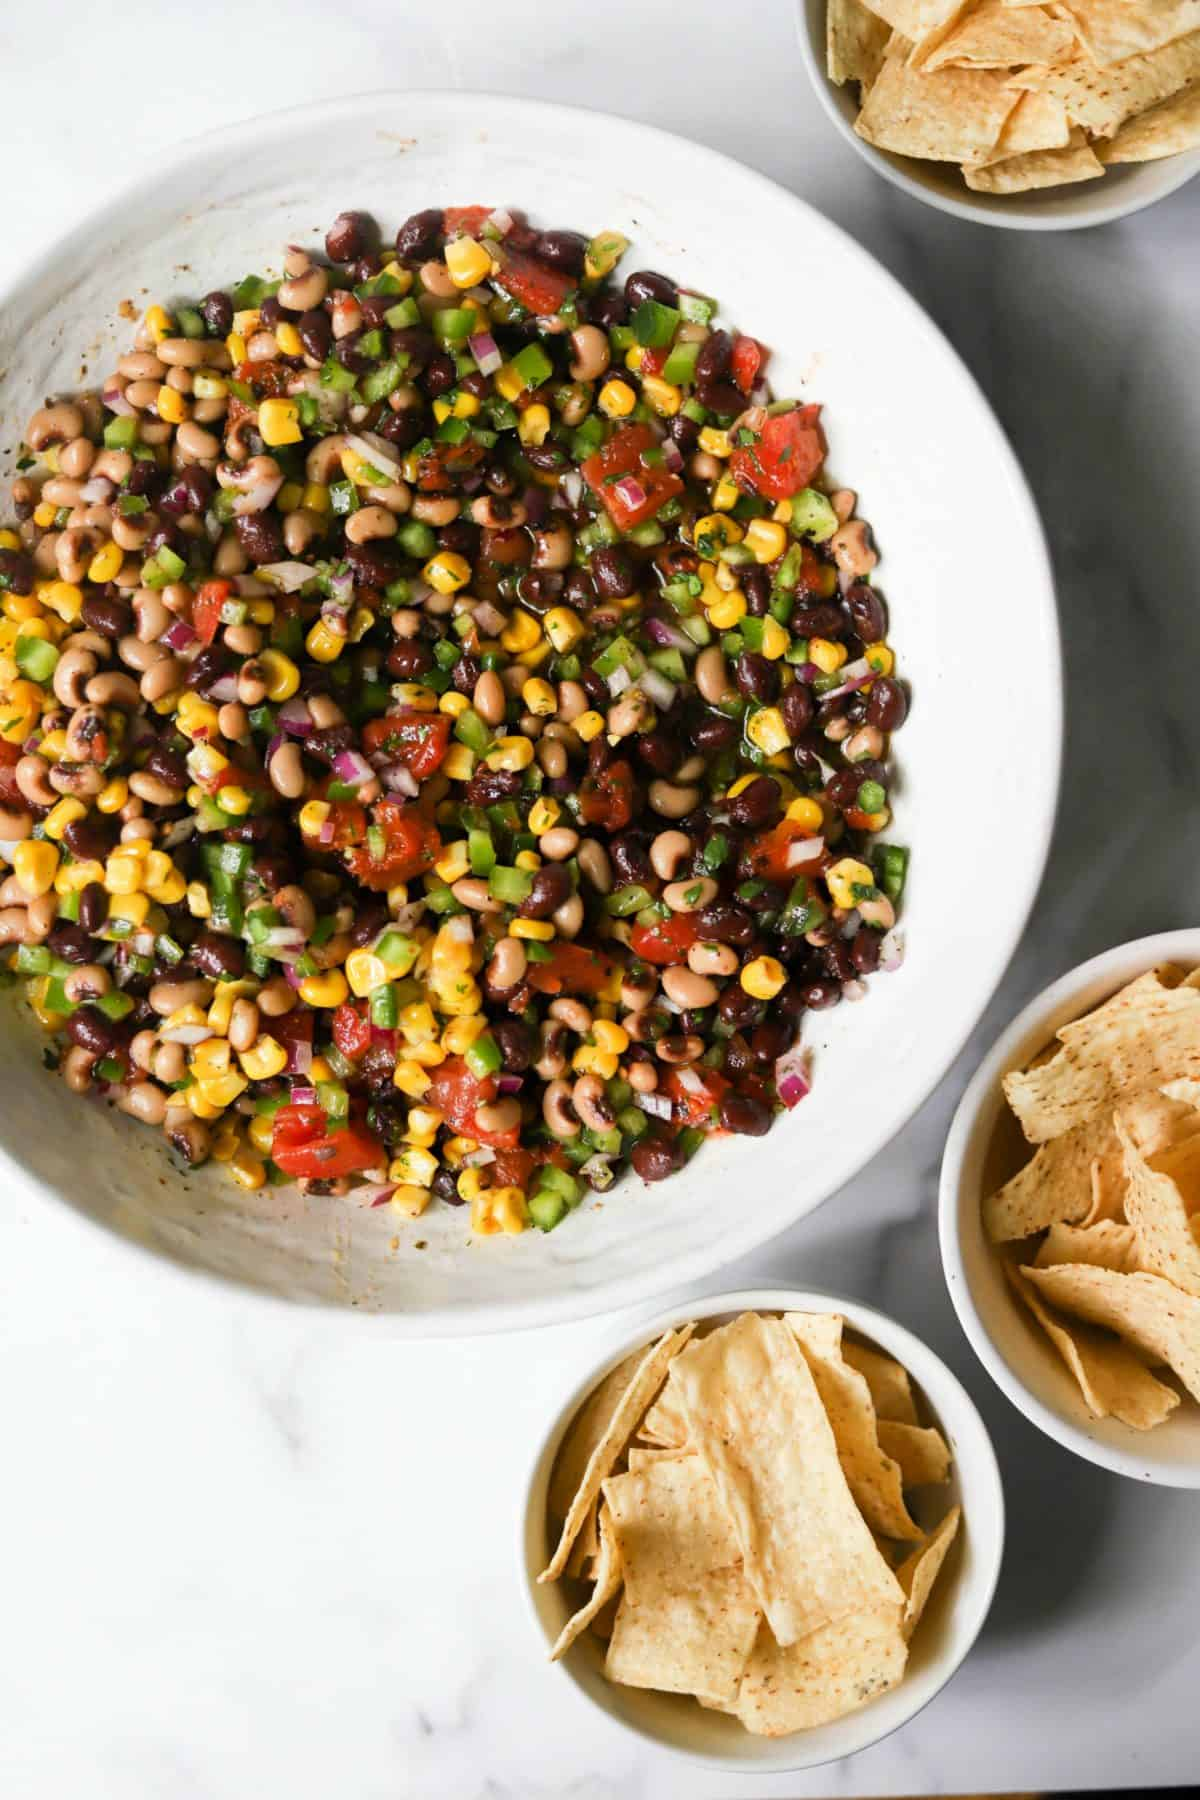 Cowboy caviar in a white bowl with tortilla chips made with canned black beans.